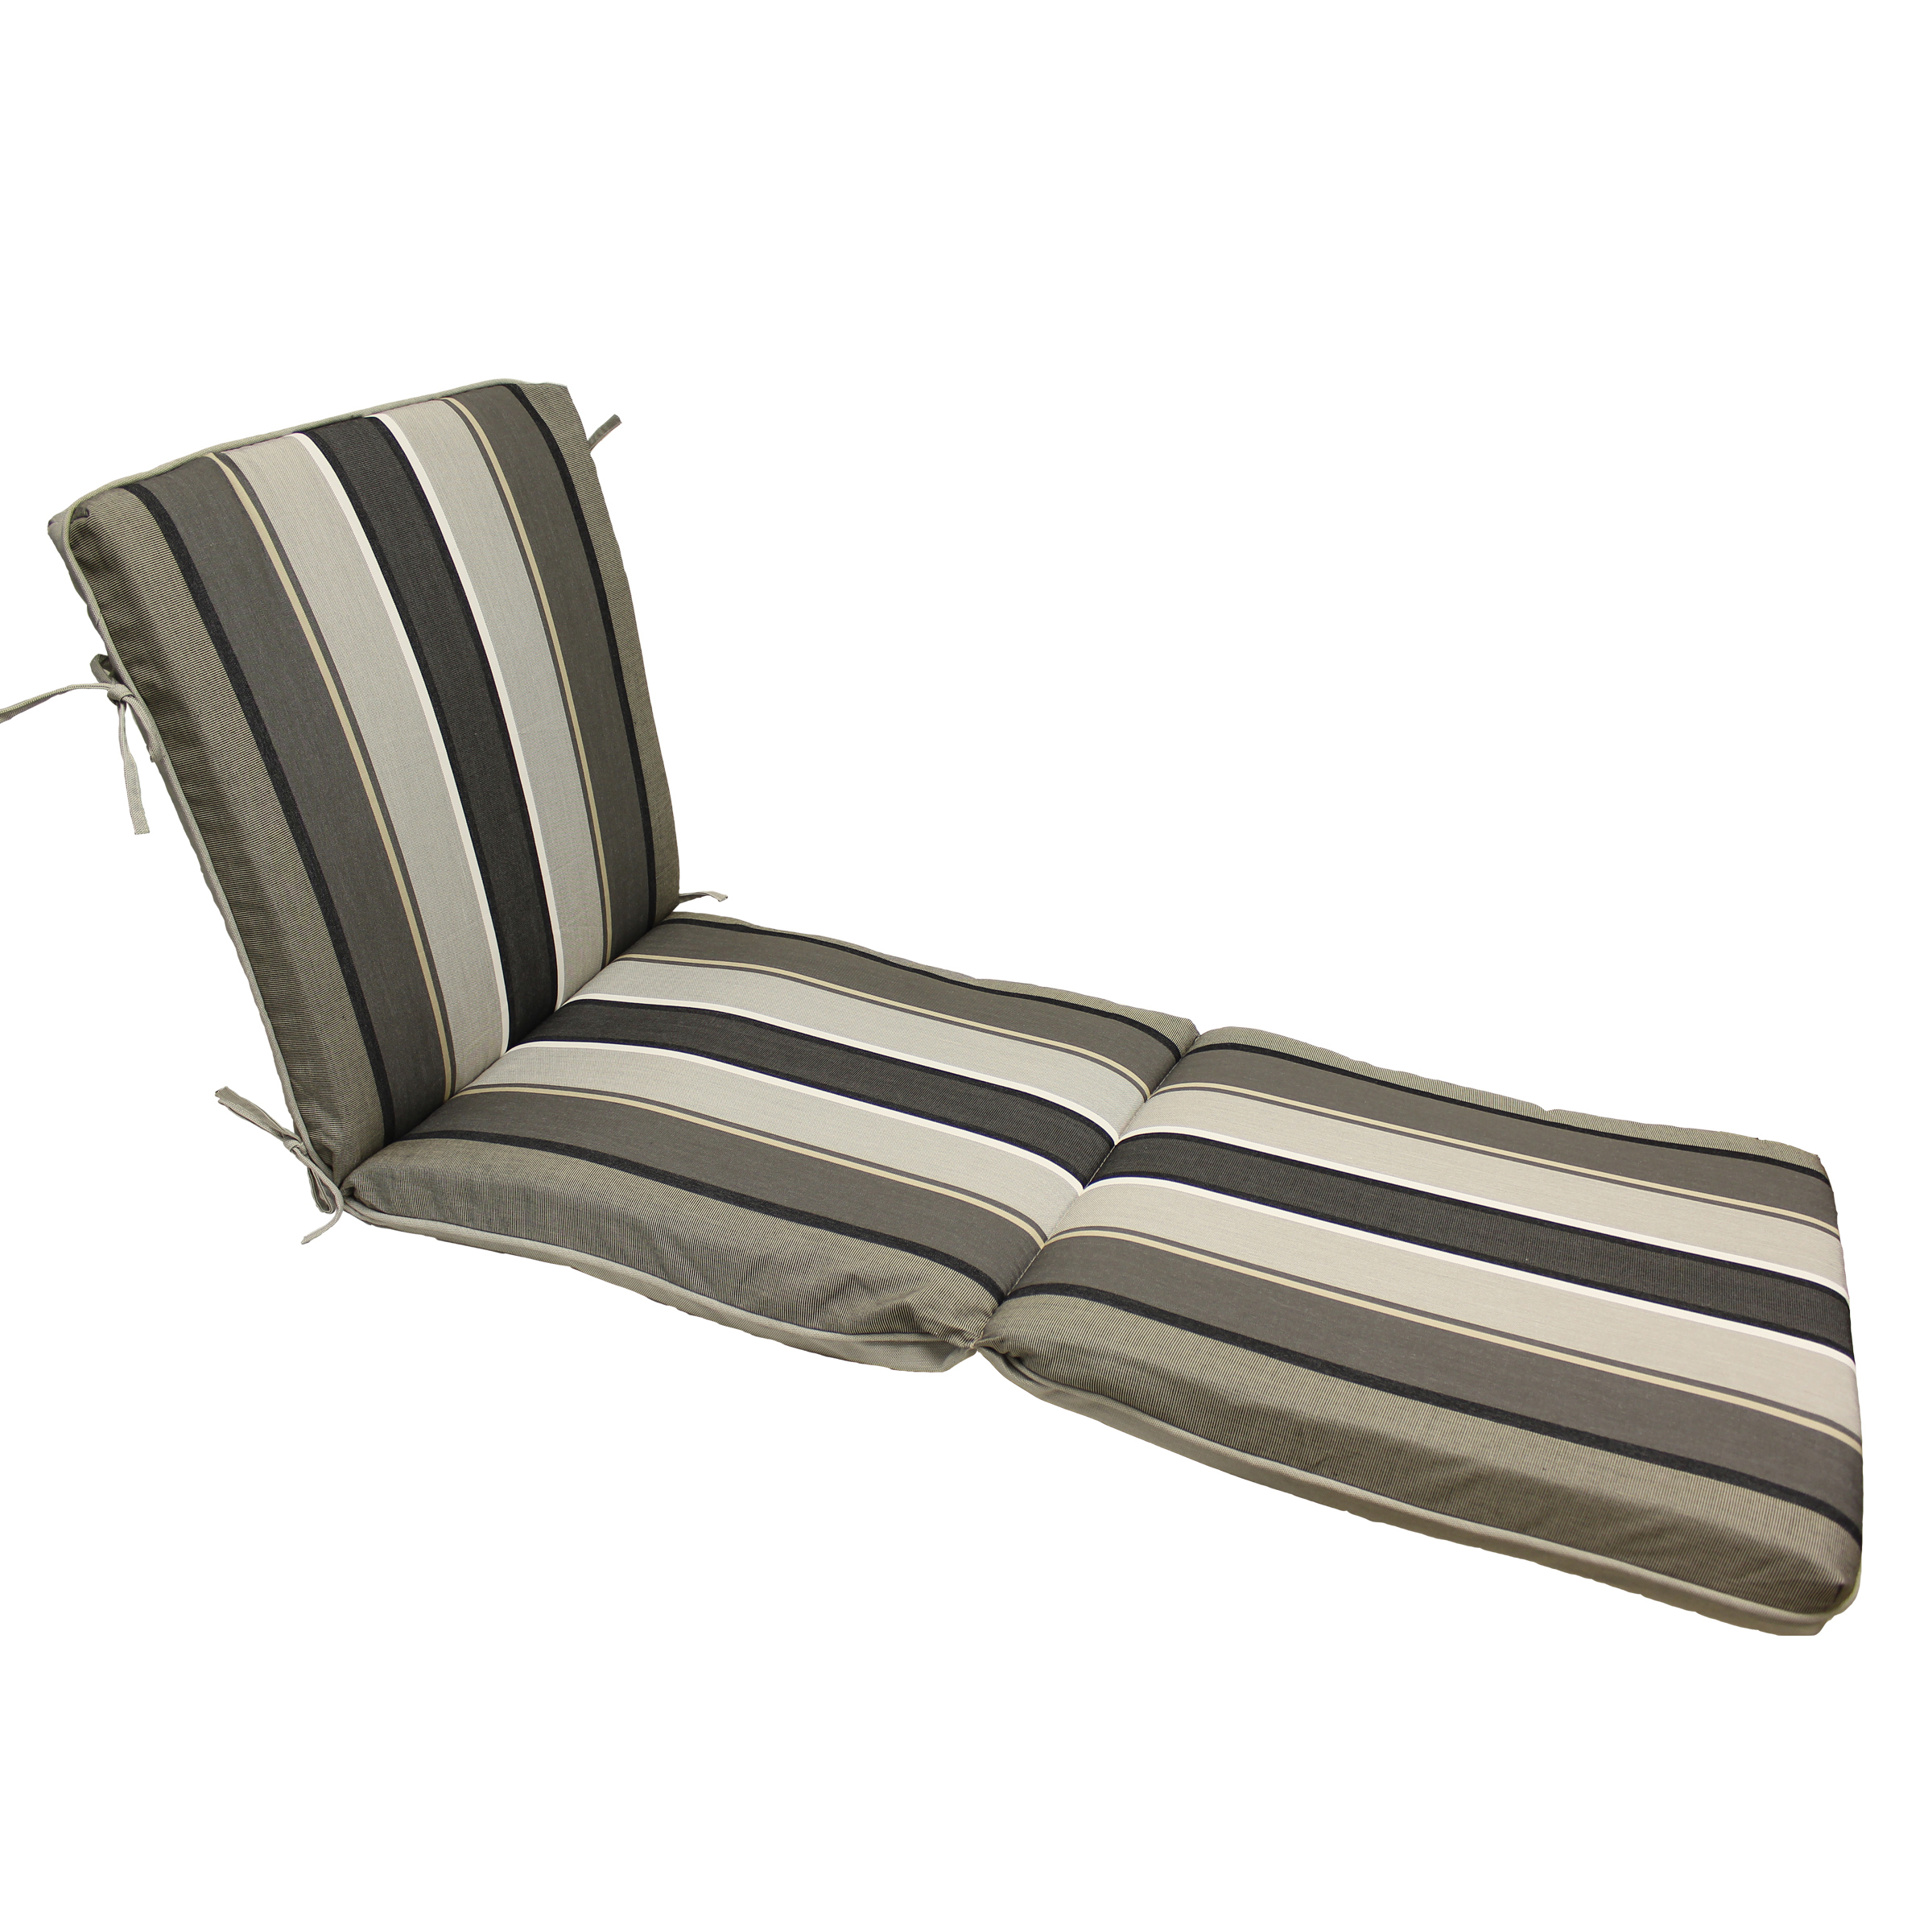 Better Homes and Gardens Linen Rev to Stripe Chaise Lounge Cushion